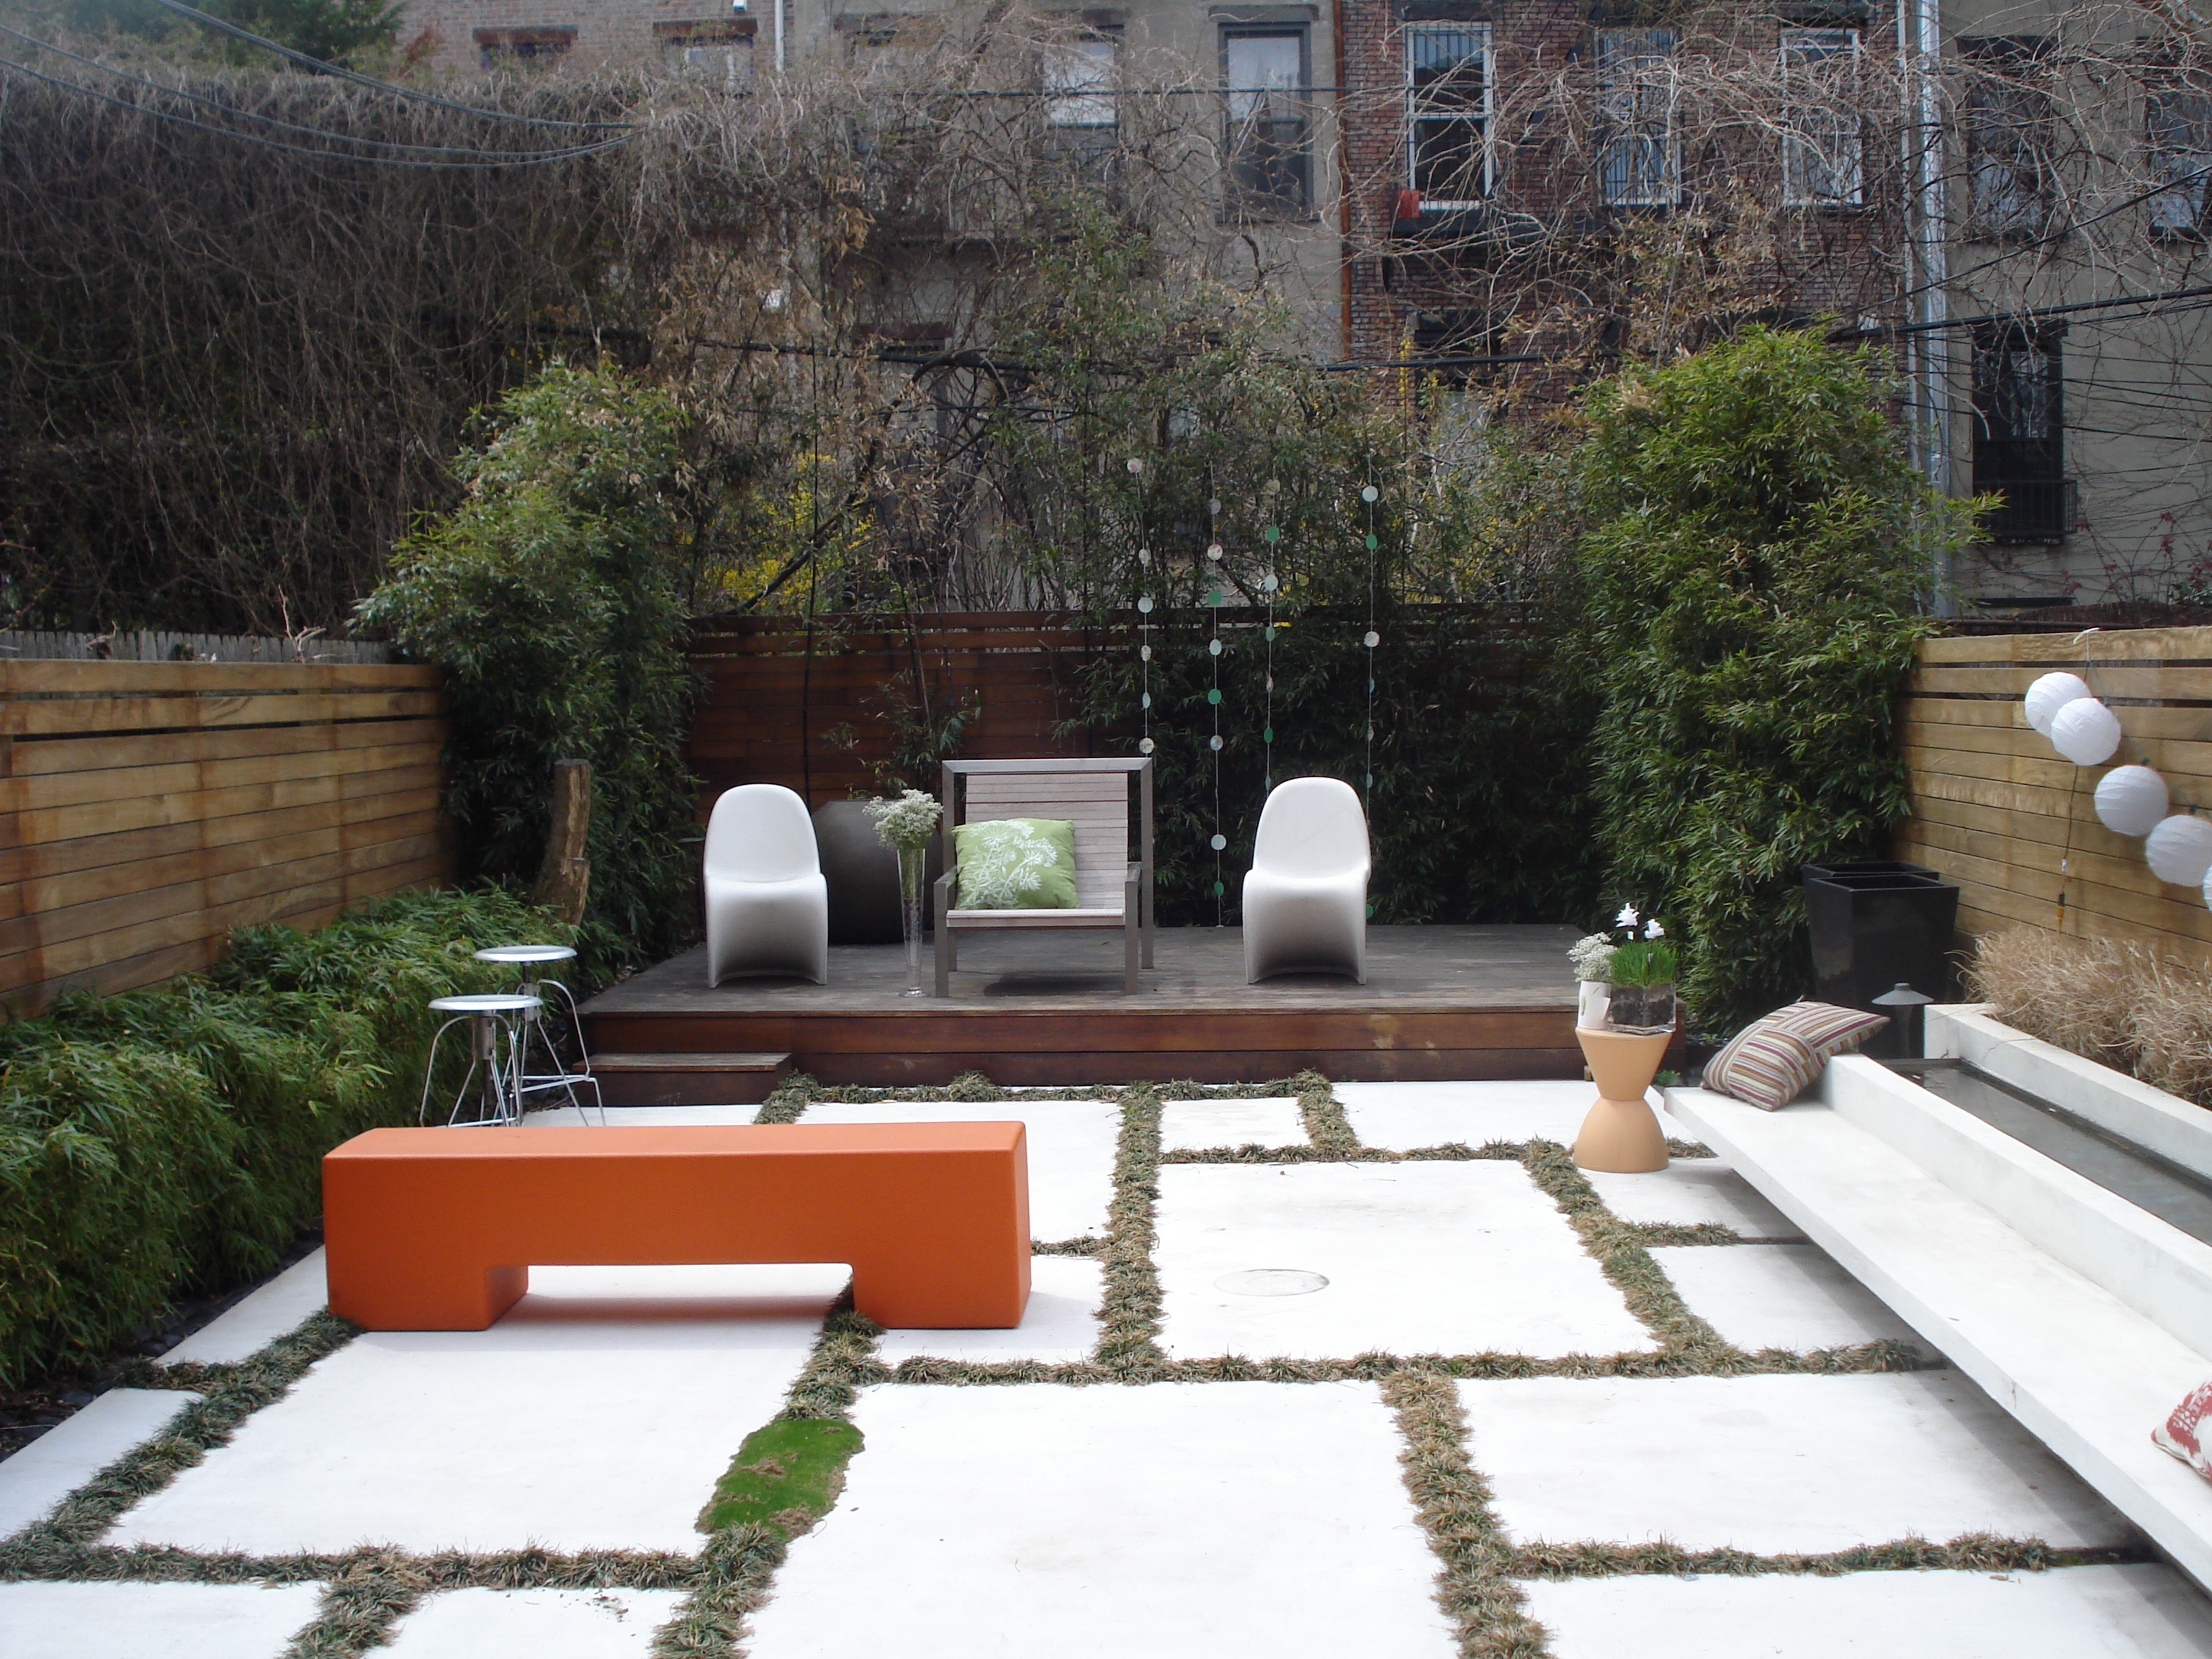 A Zen backyard gets a touch of whimsy.